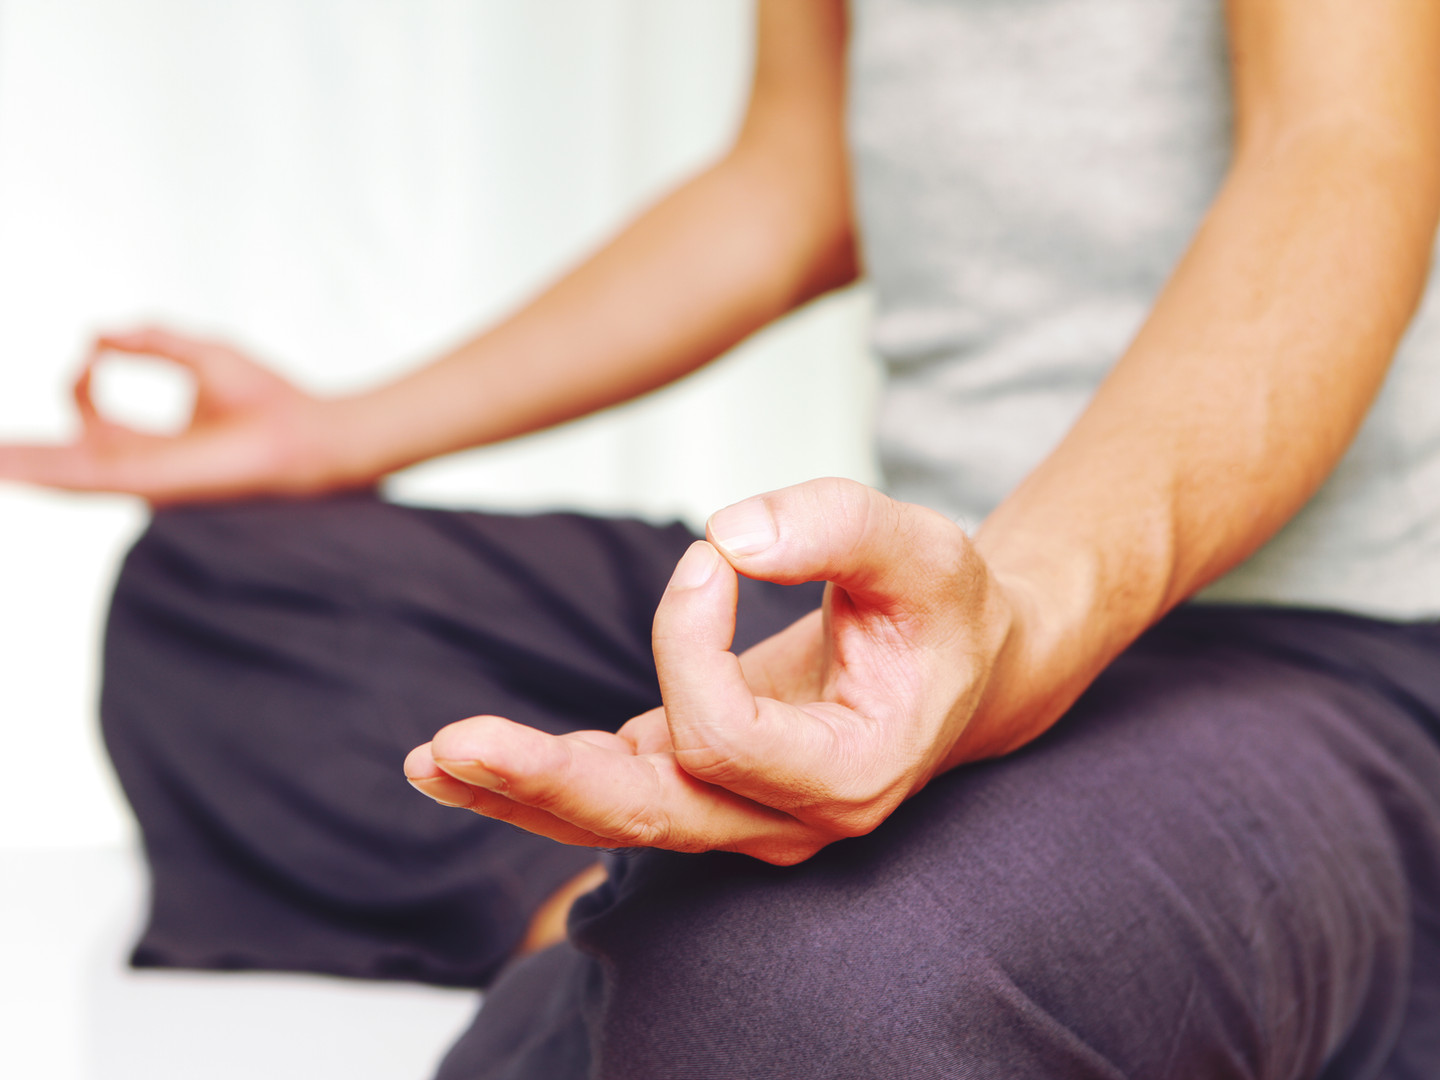 Yoga meditation mudra